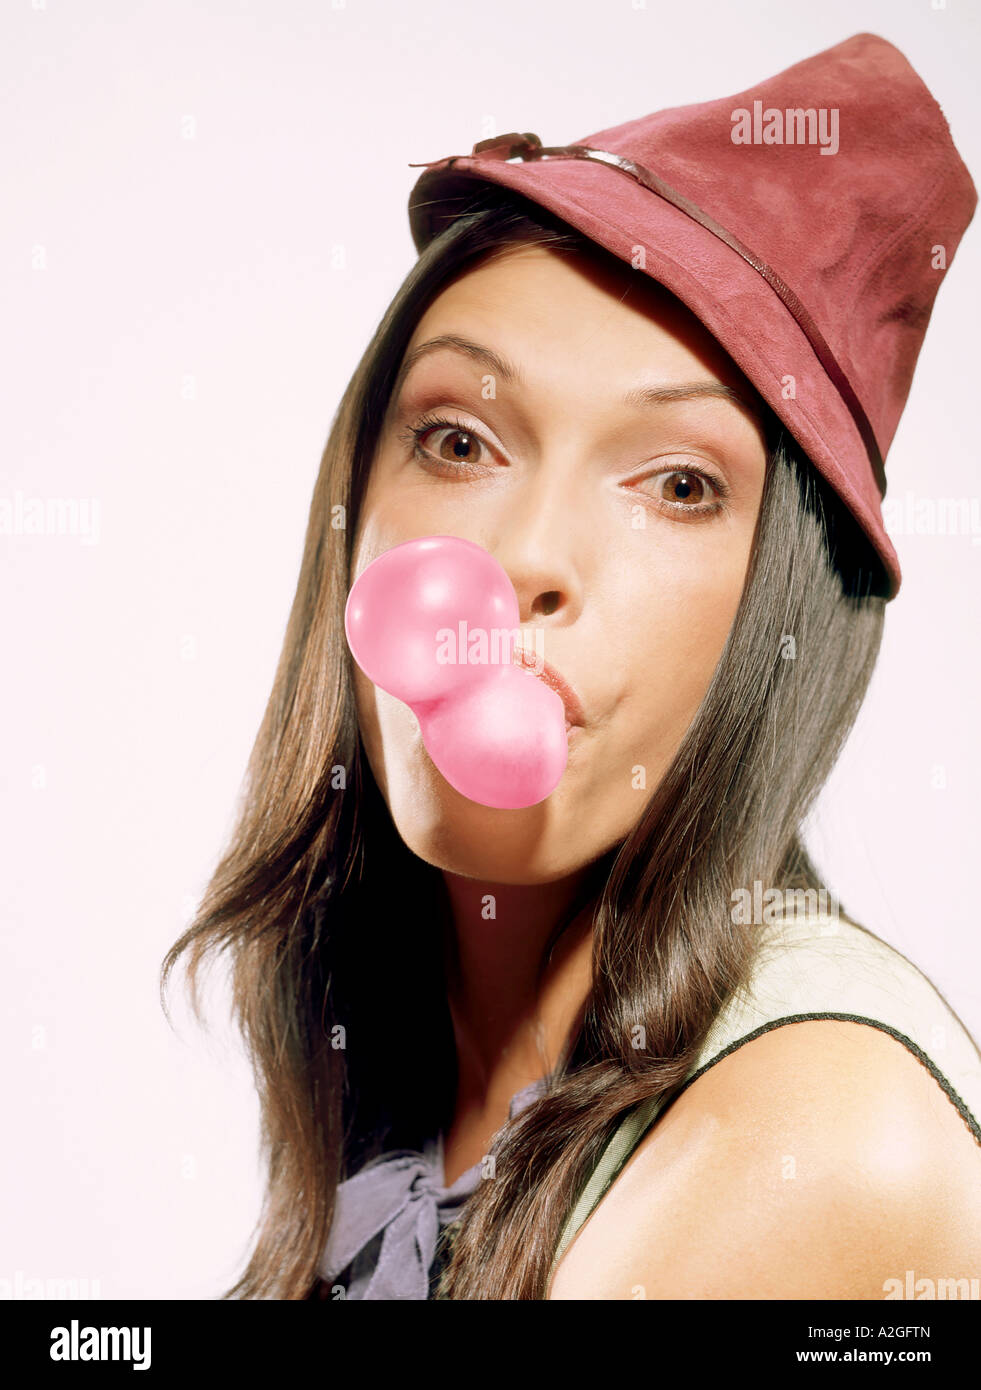 1216613 indoor studio young woman 25 30 brunette long hair hat pink chewing gum bubble bubbles fun play close up - Stock Image